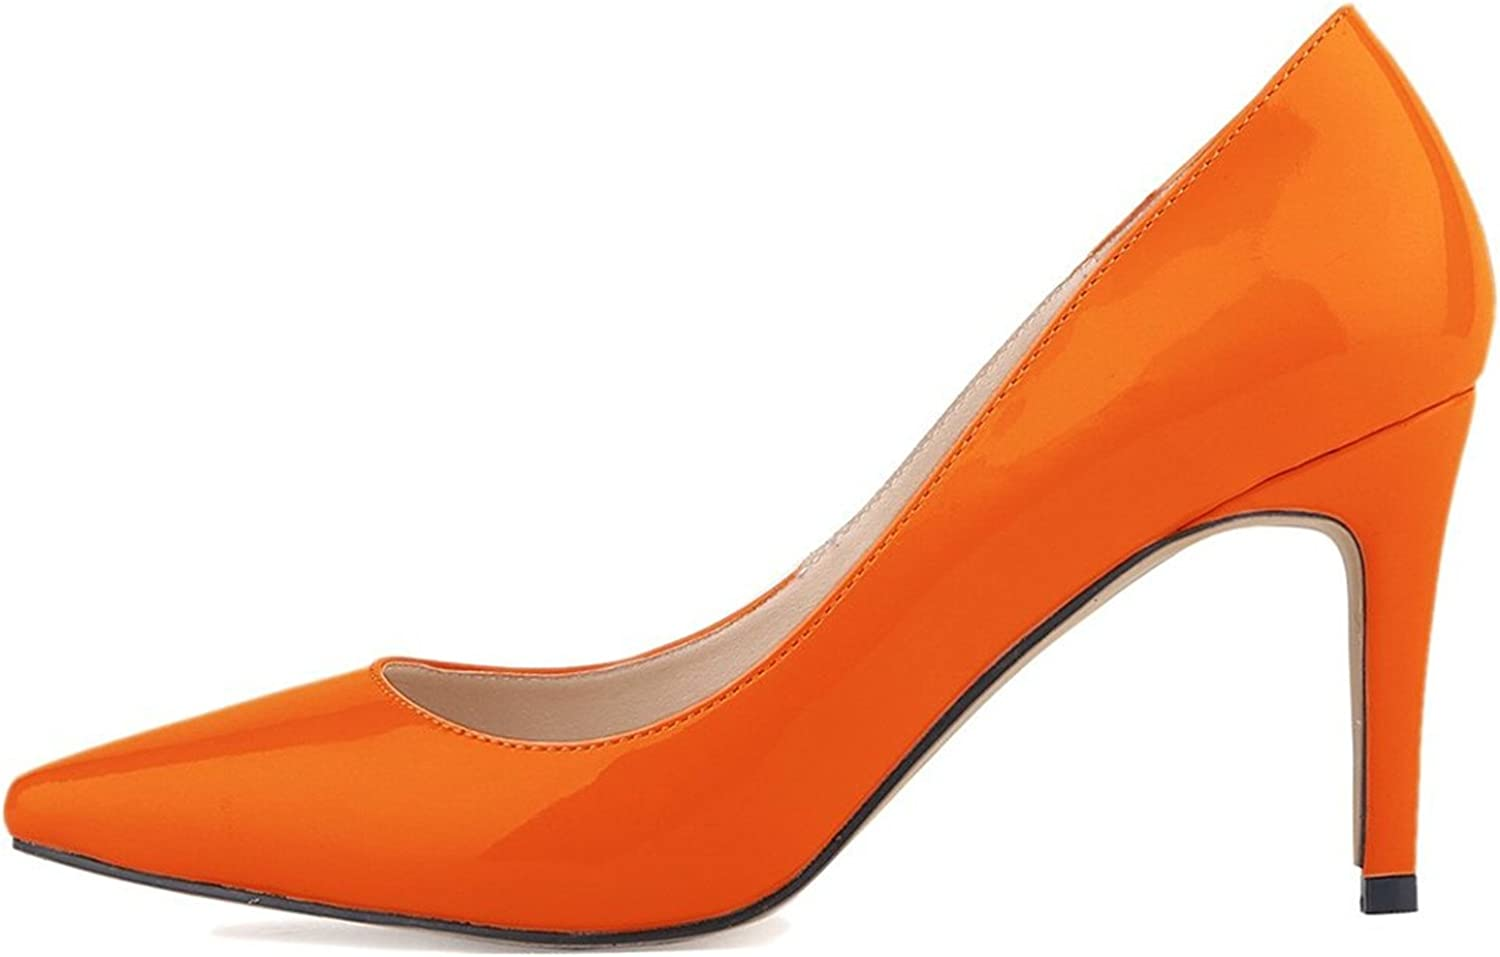 Oppicong Womens shoes Closed Toe High Heels Women's Pointed Slender Leather Pumps orange,8cm heels5 B(M) US